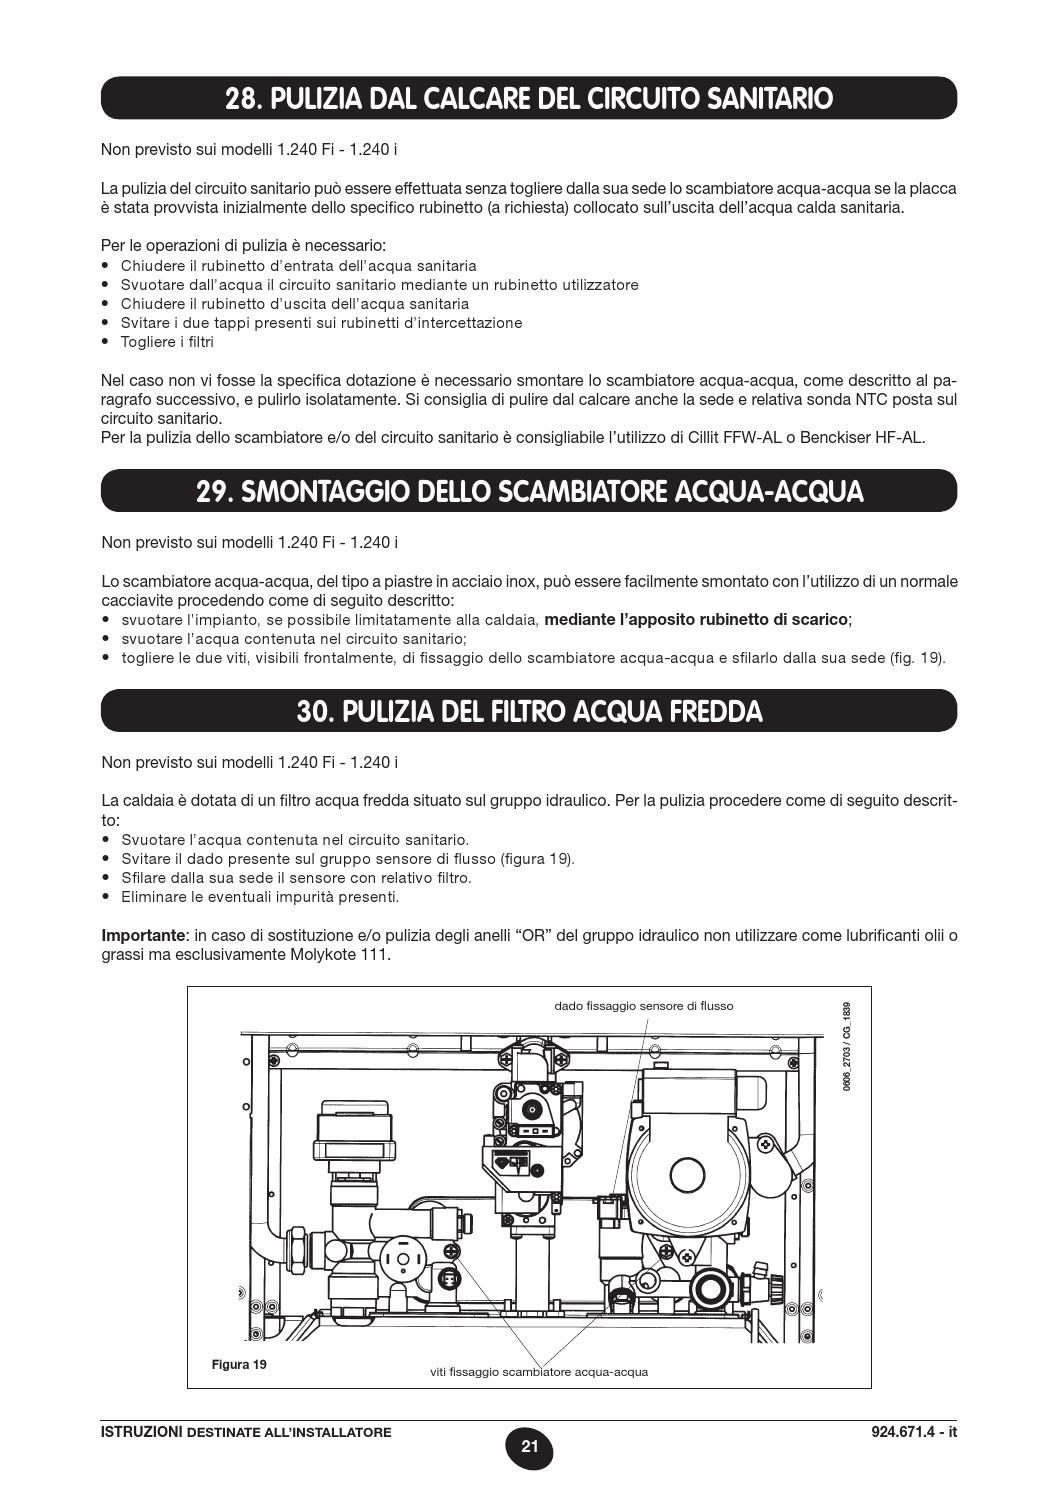 Manuale eco 3 baxi by baxi spa page 21 issuu for Baxi eco 3 manuale